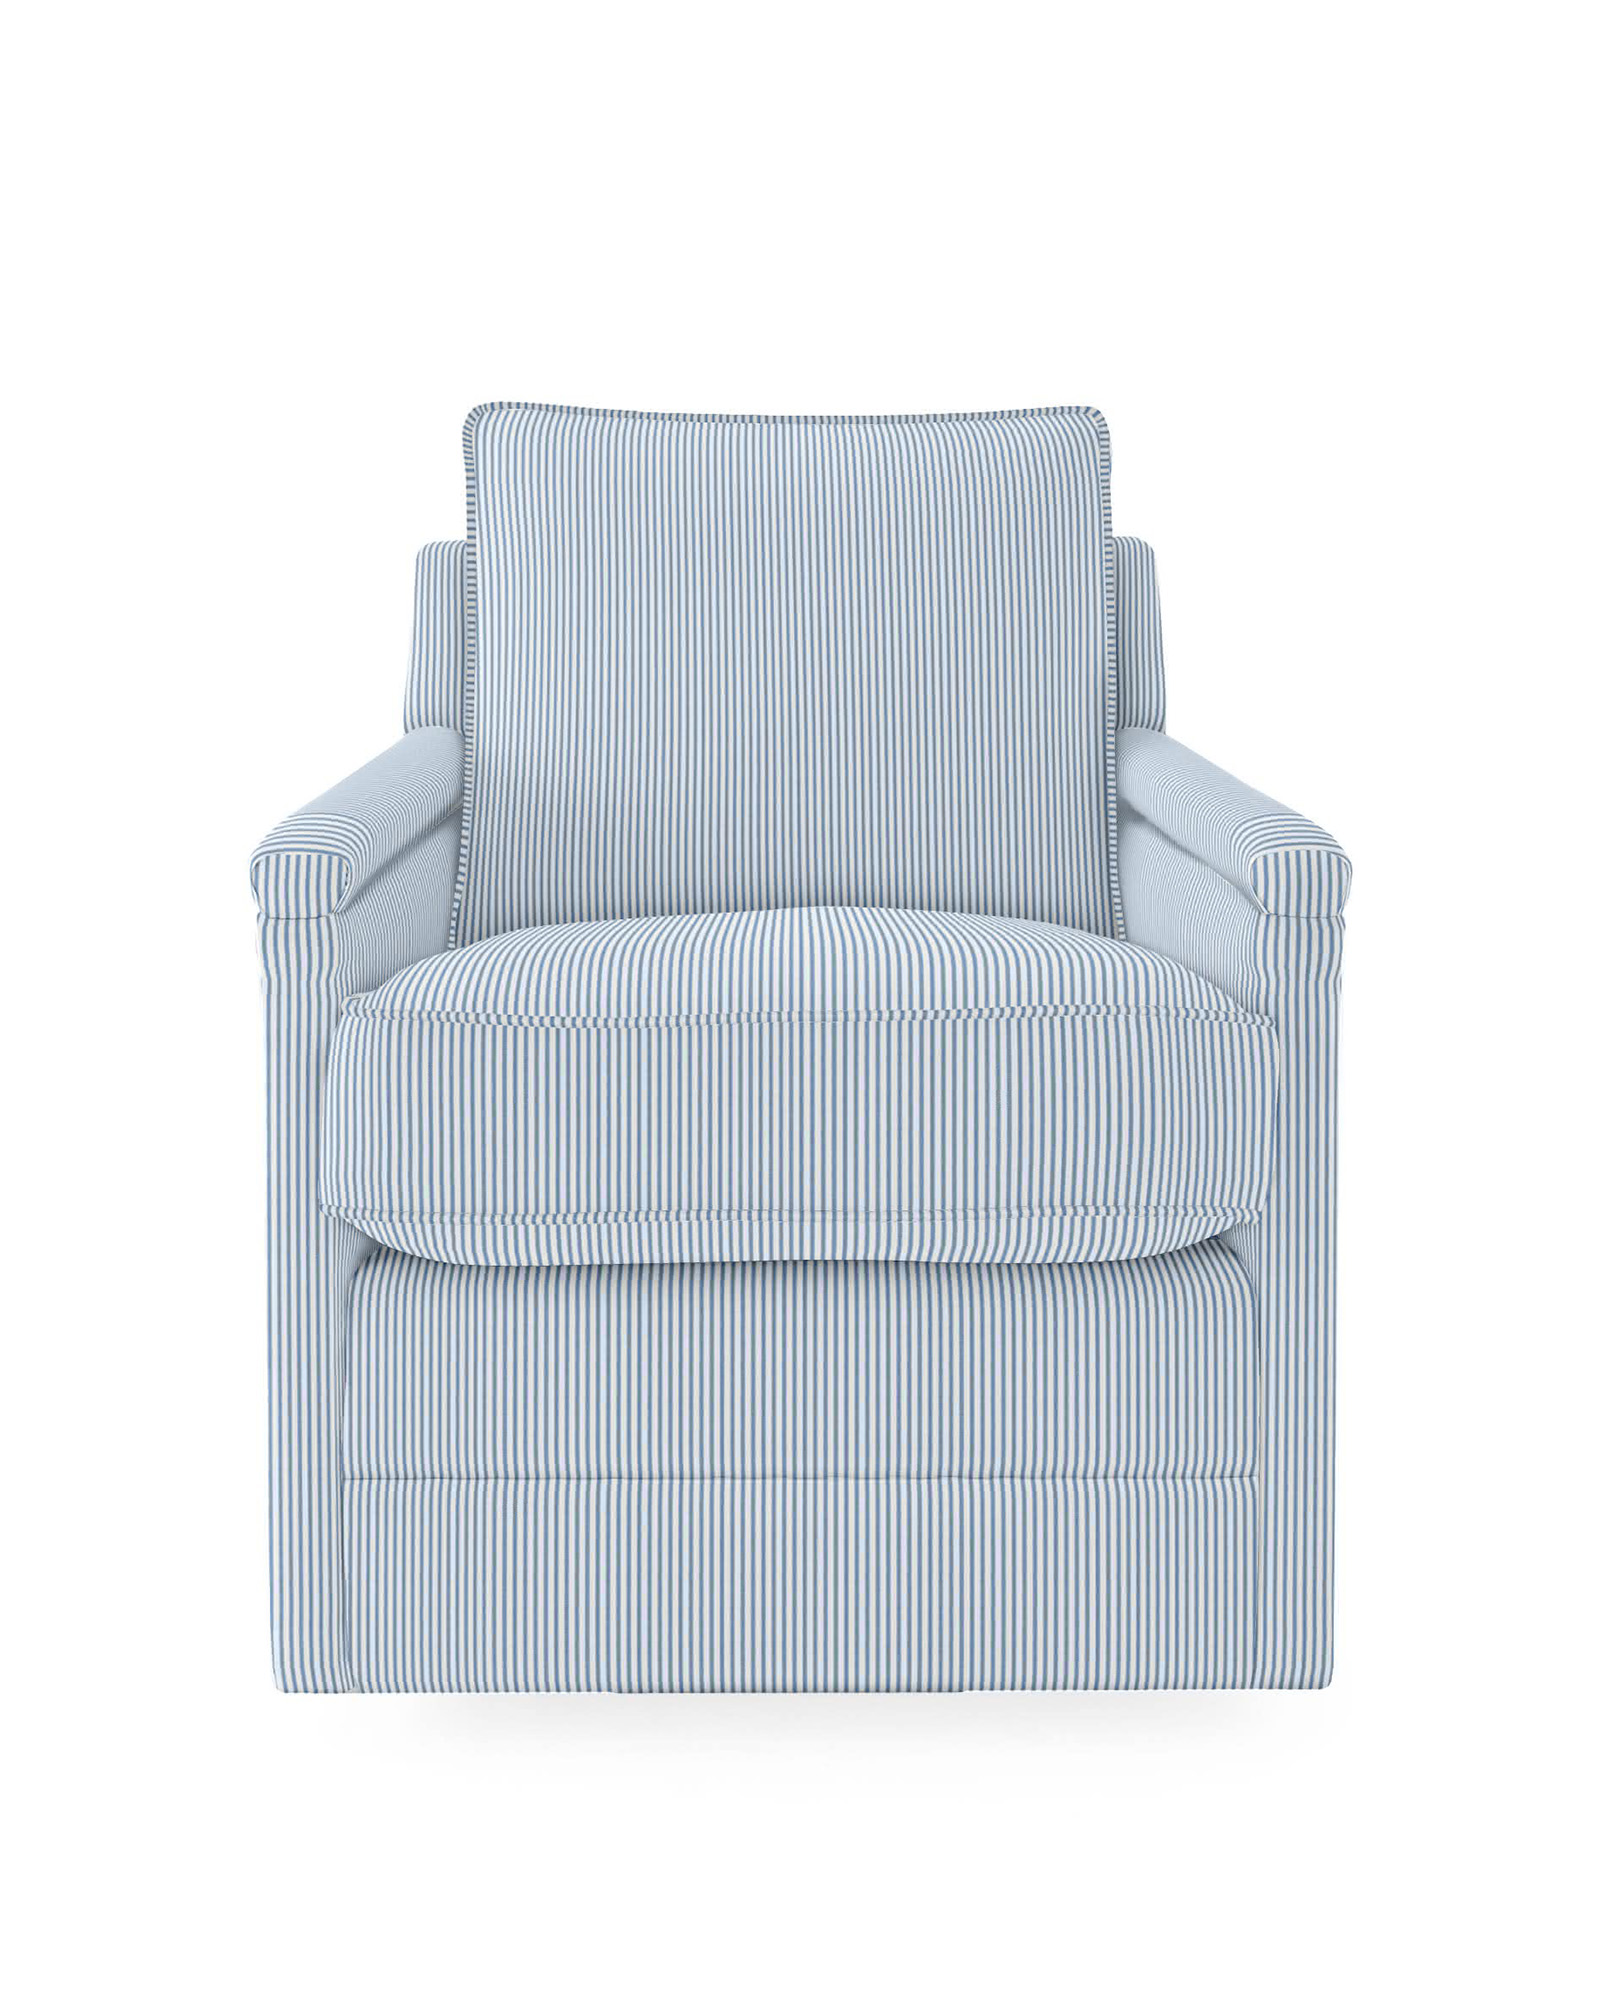 Spruce Street Swivel Chair - Perennials® French Blue Pinstripe,